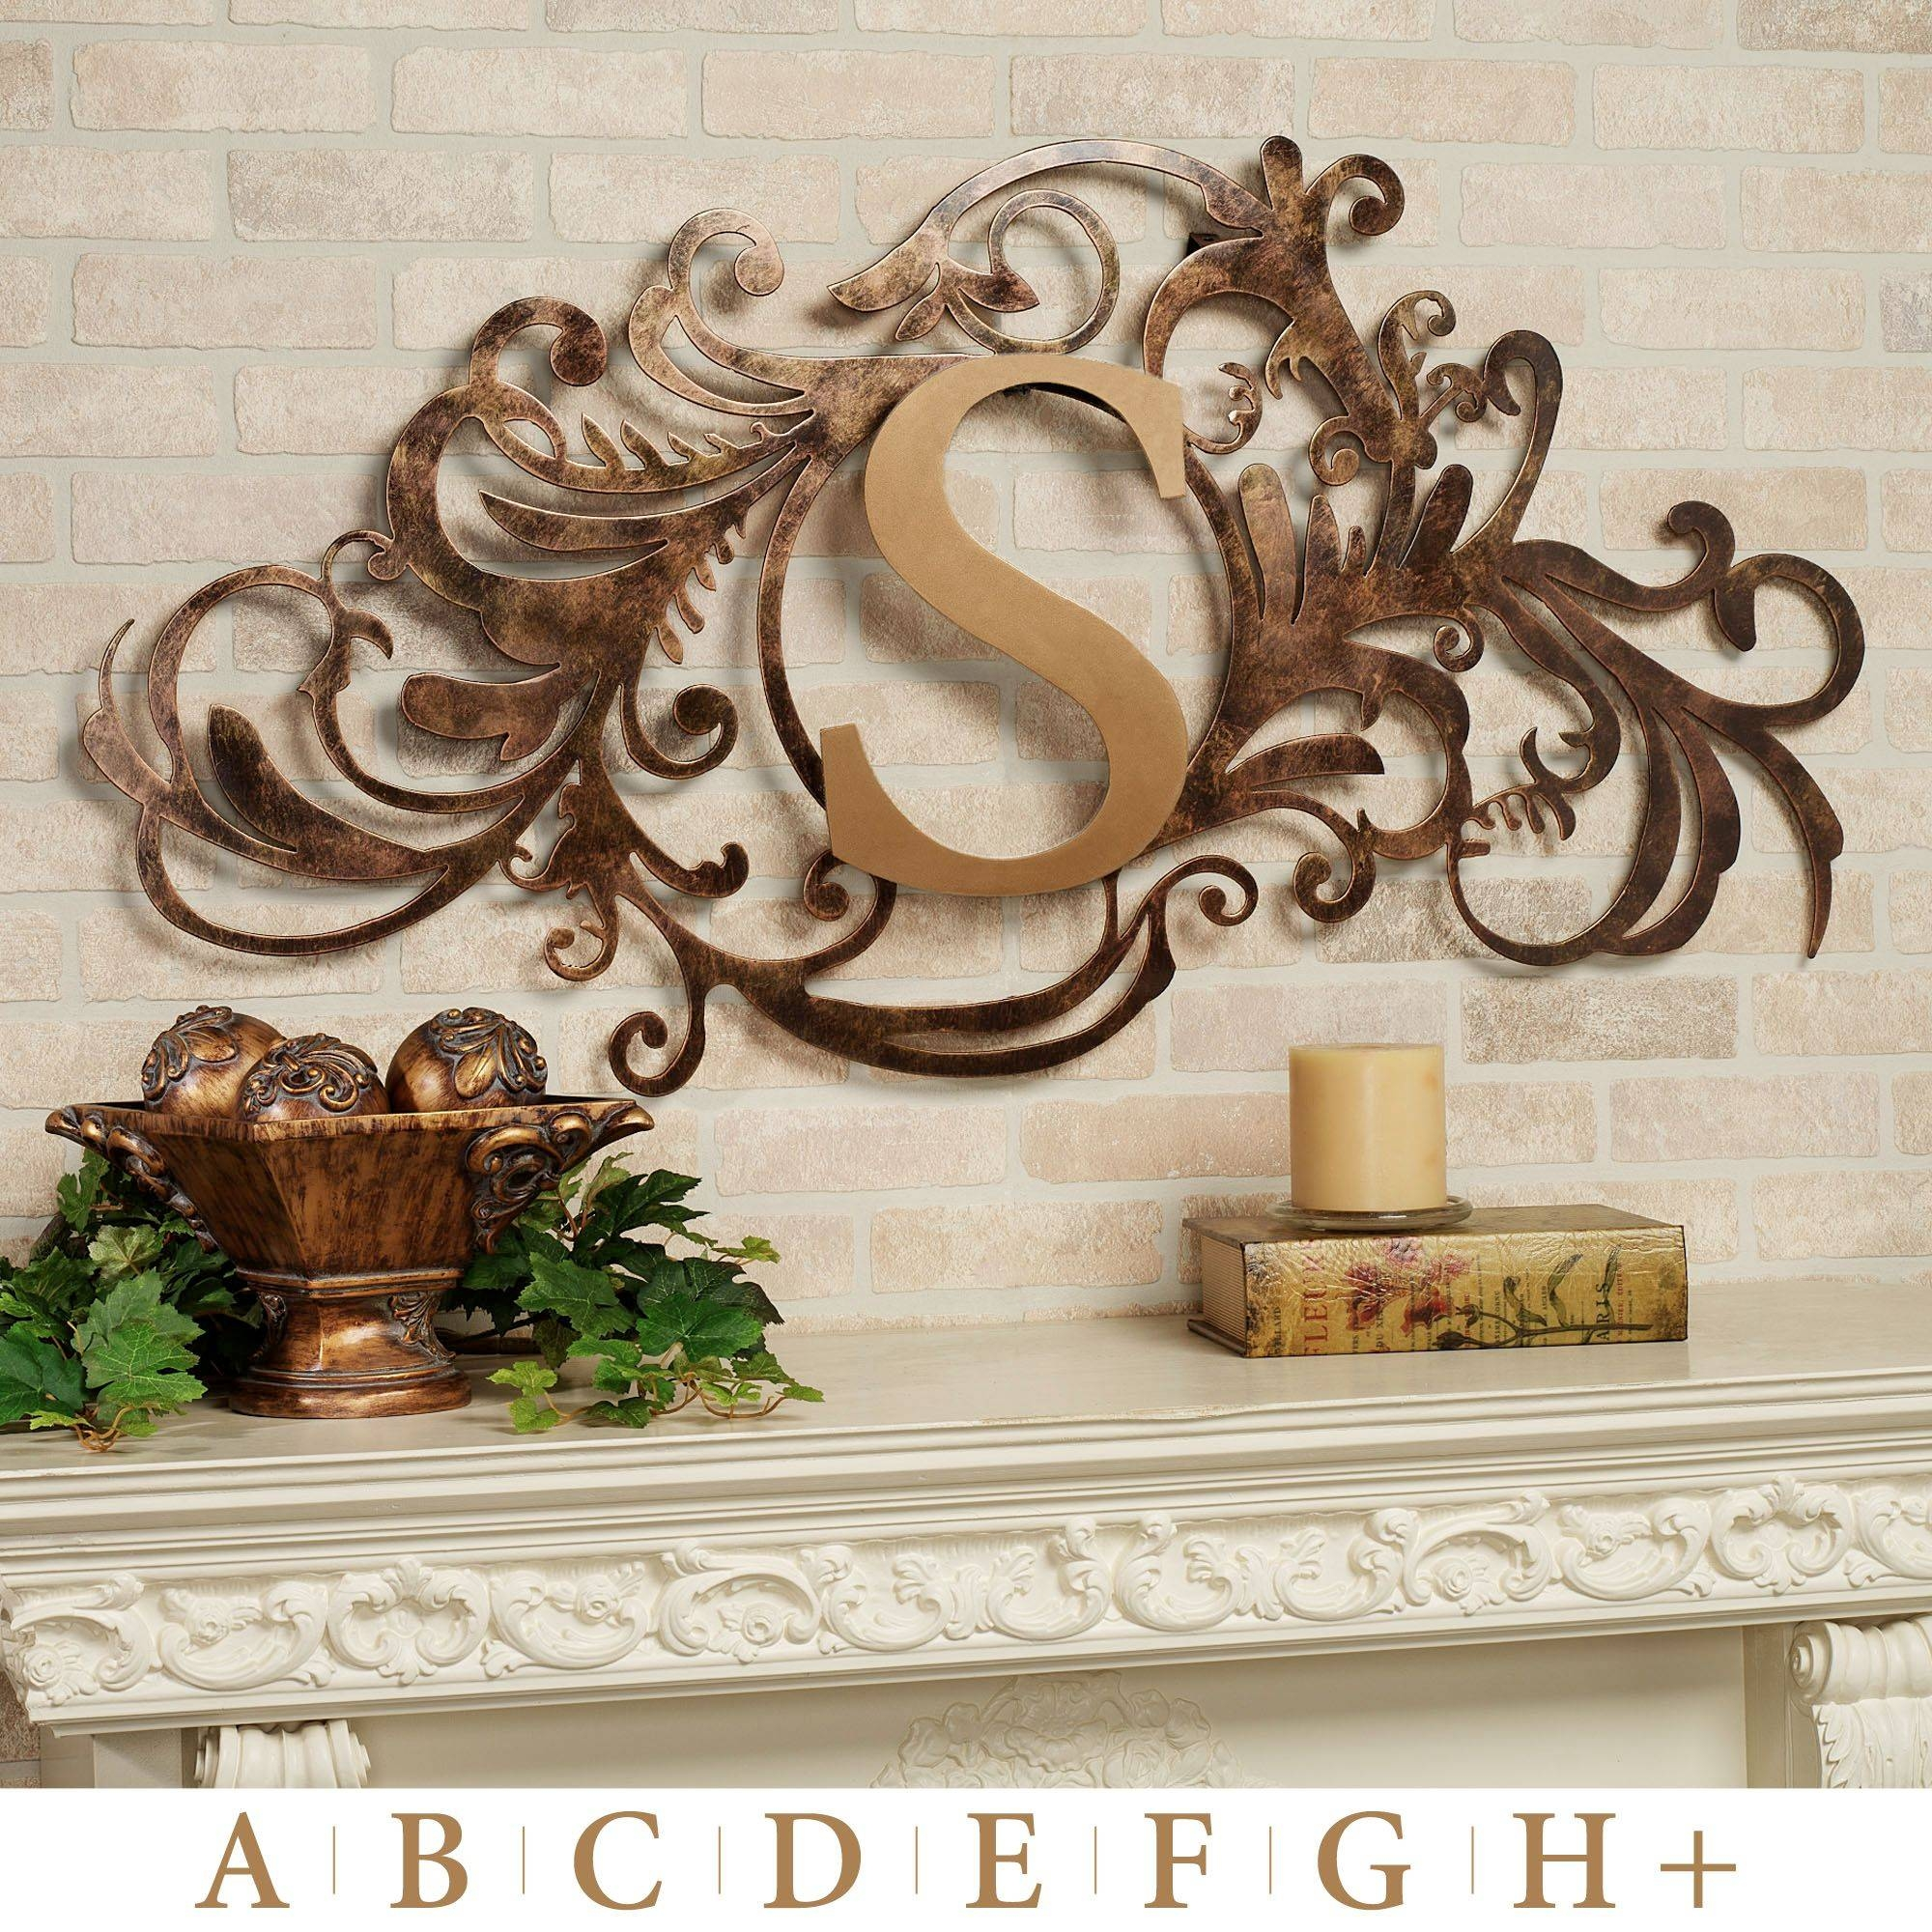 Wall Decor: Black Wrought Iron Wall Decor Ideas For Home Regarding Newest Wrought Iron Garden Wall Art (View 18 of 25)